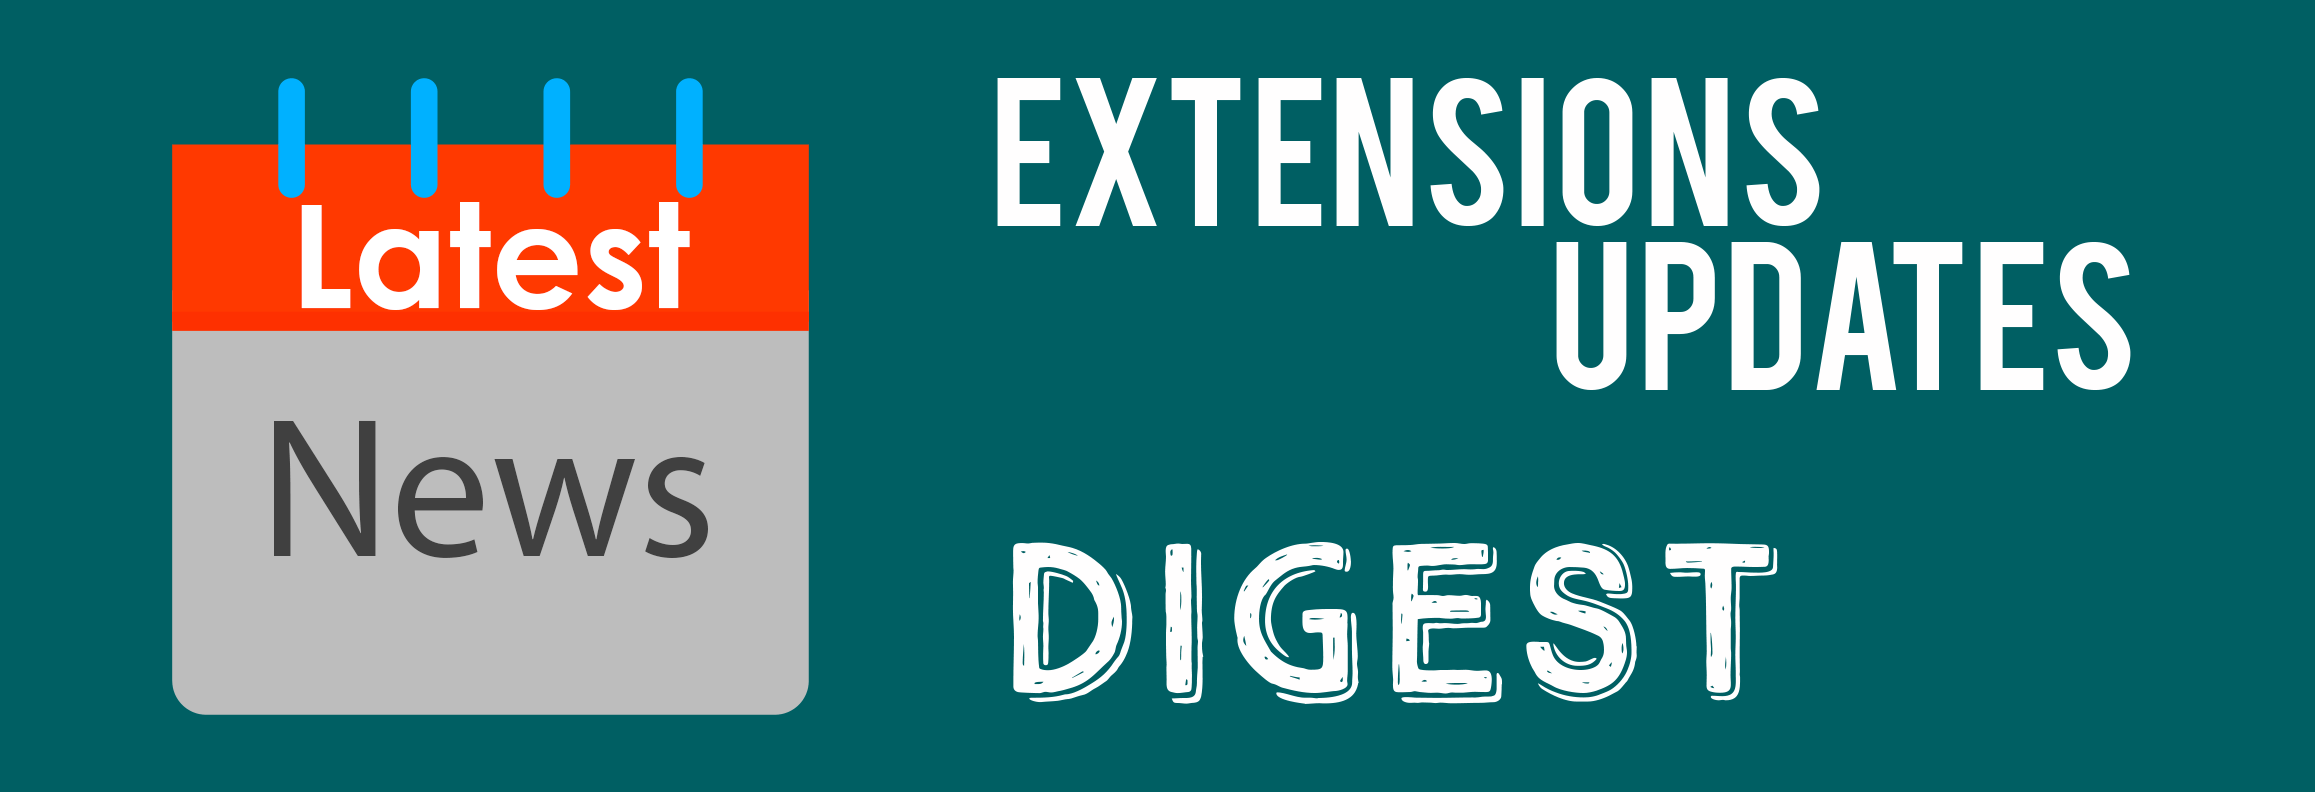 Mirasvit Latest Extensions Update Digest